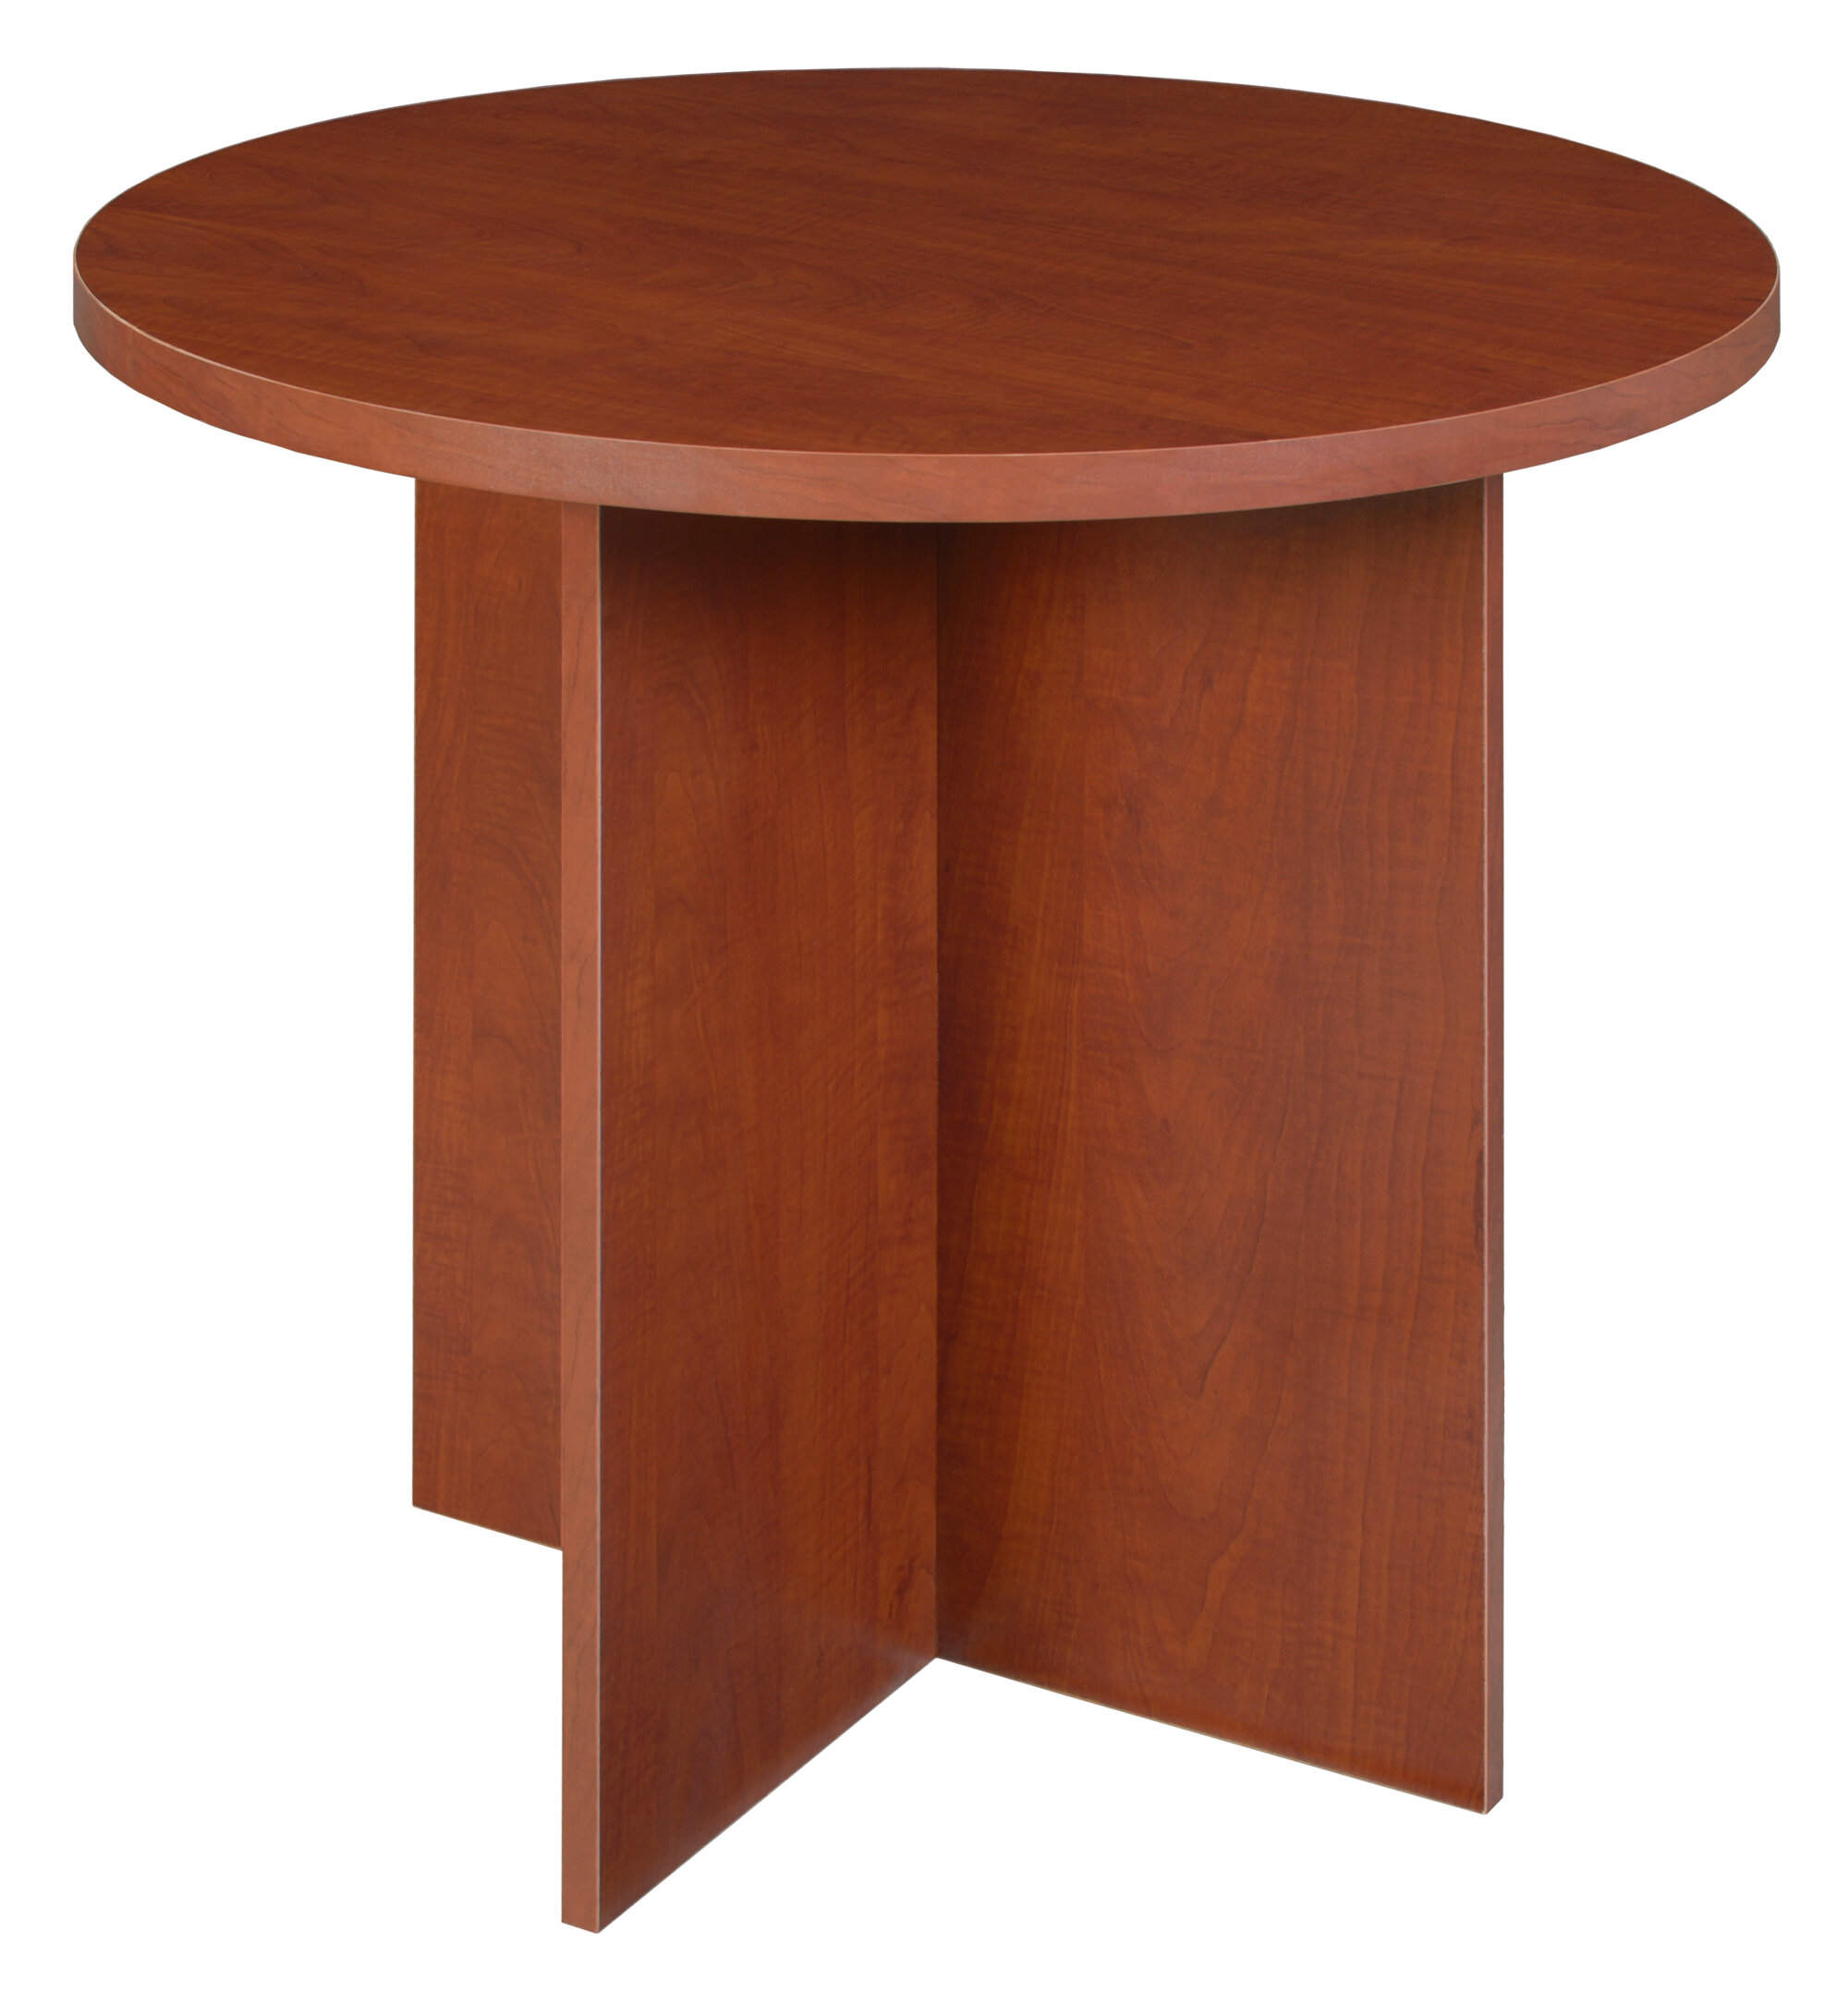 Picture of: Winston Porter Haddonfield Round 30 Dining Table Reviews Wayfair